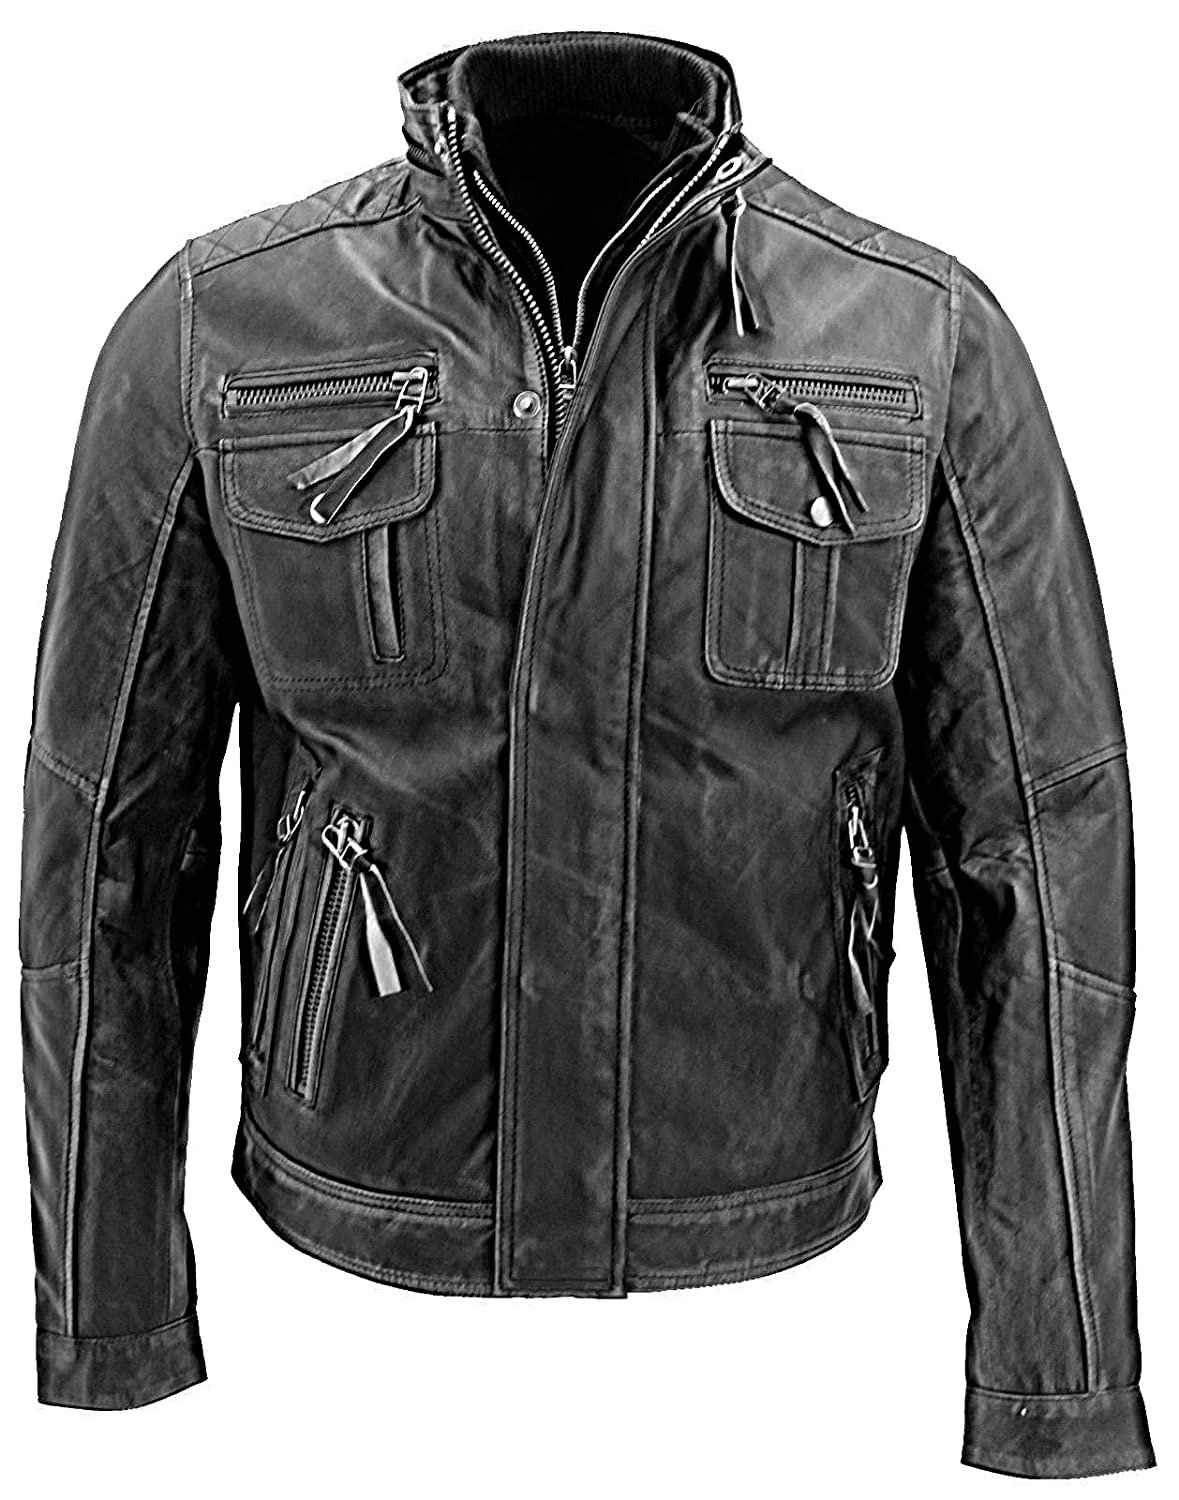 Distressed leather Gray Color biker Style Café Racer Original Leather Jacket 2nd Skin ●→ hgh-001-gray